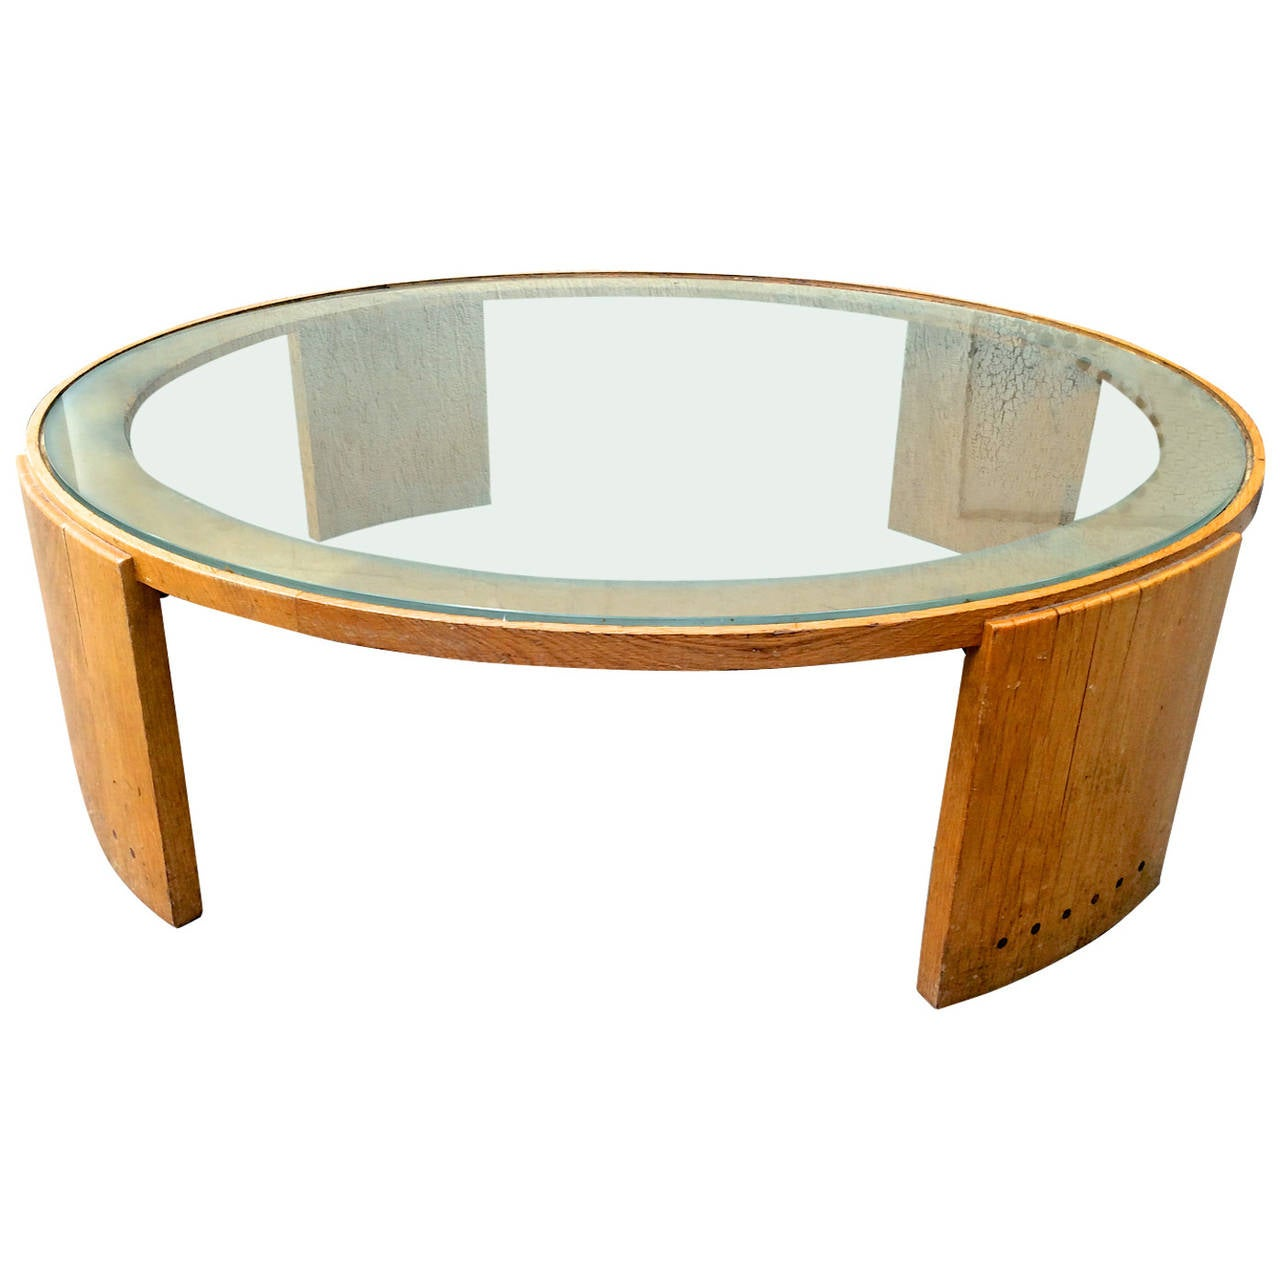 Jacques adnet very large round coffee table in oak and glass top at 1stdibs Wide coffee table